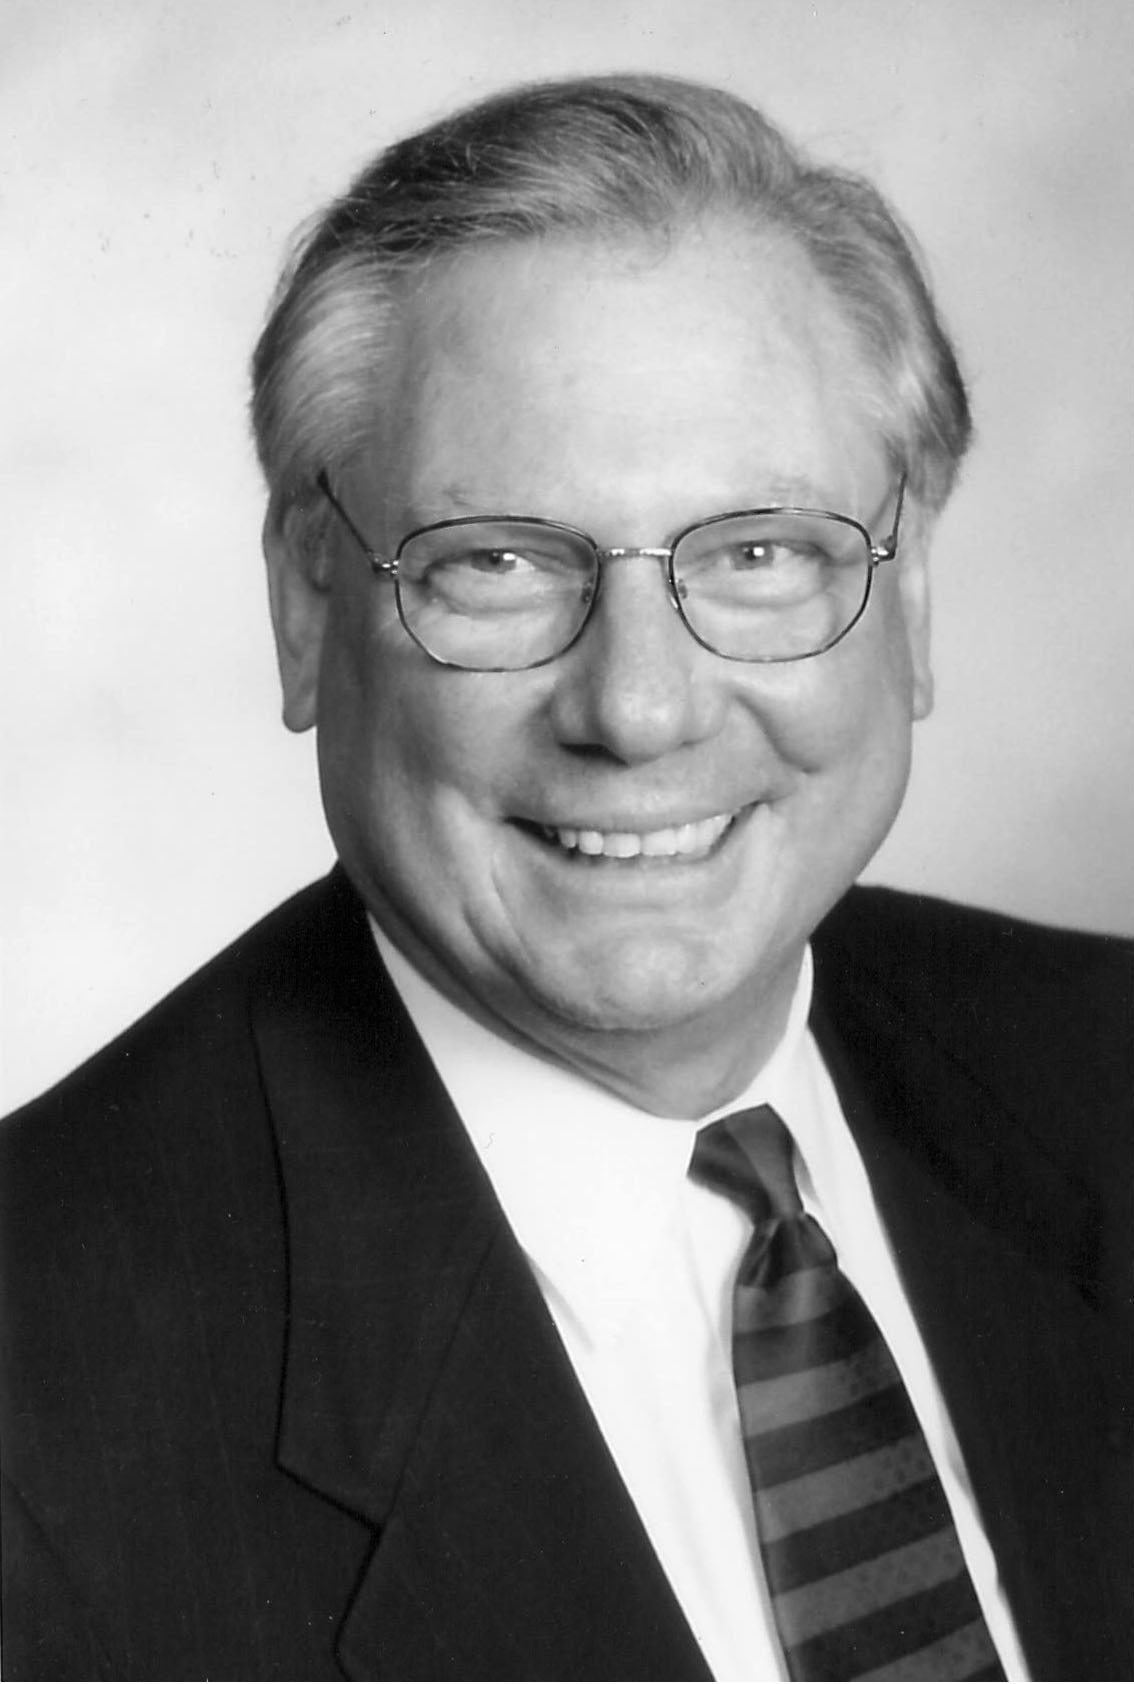 Dr. Robert Rose, 1997-2001